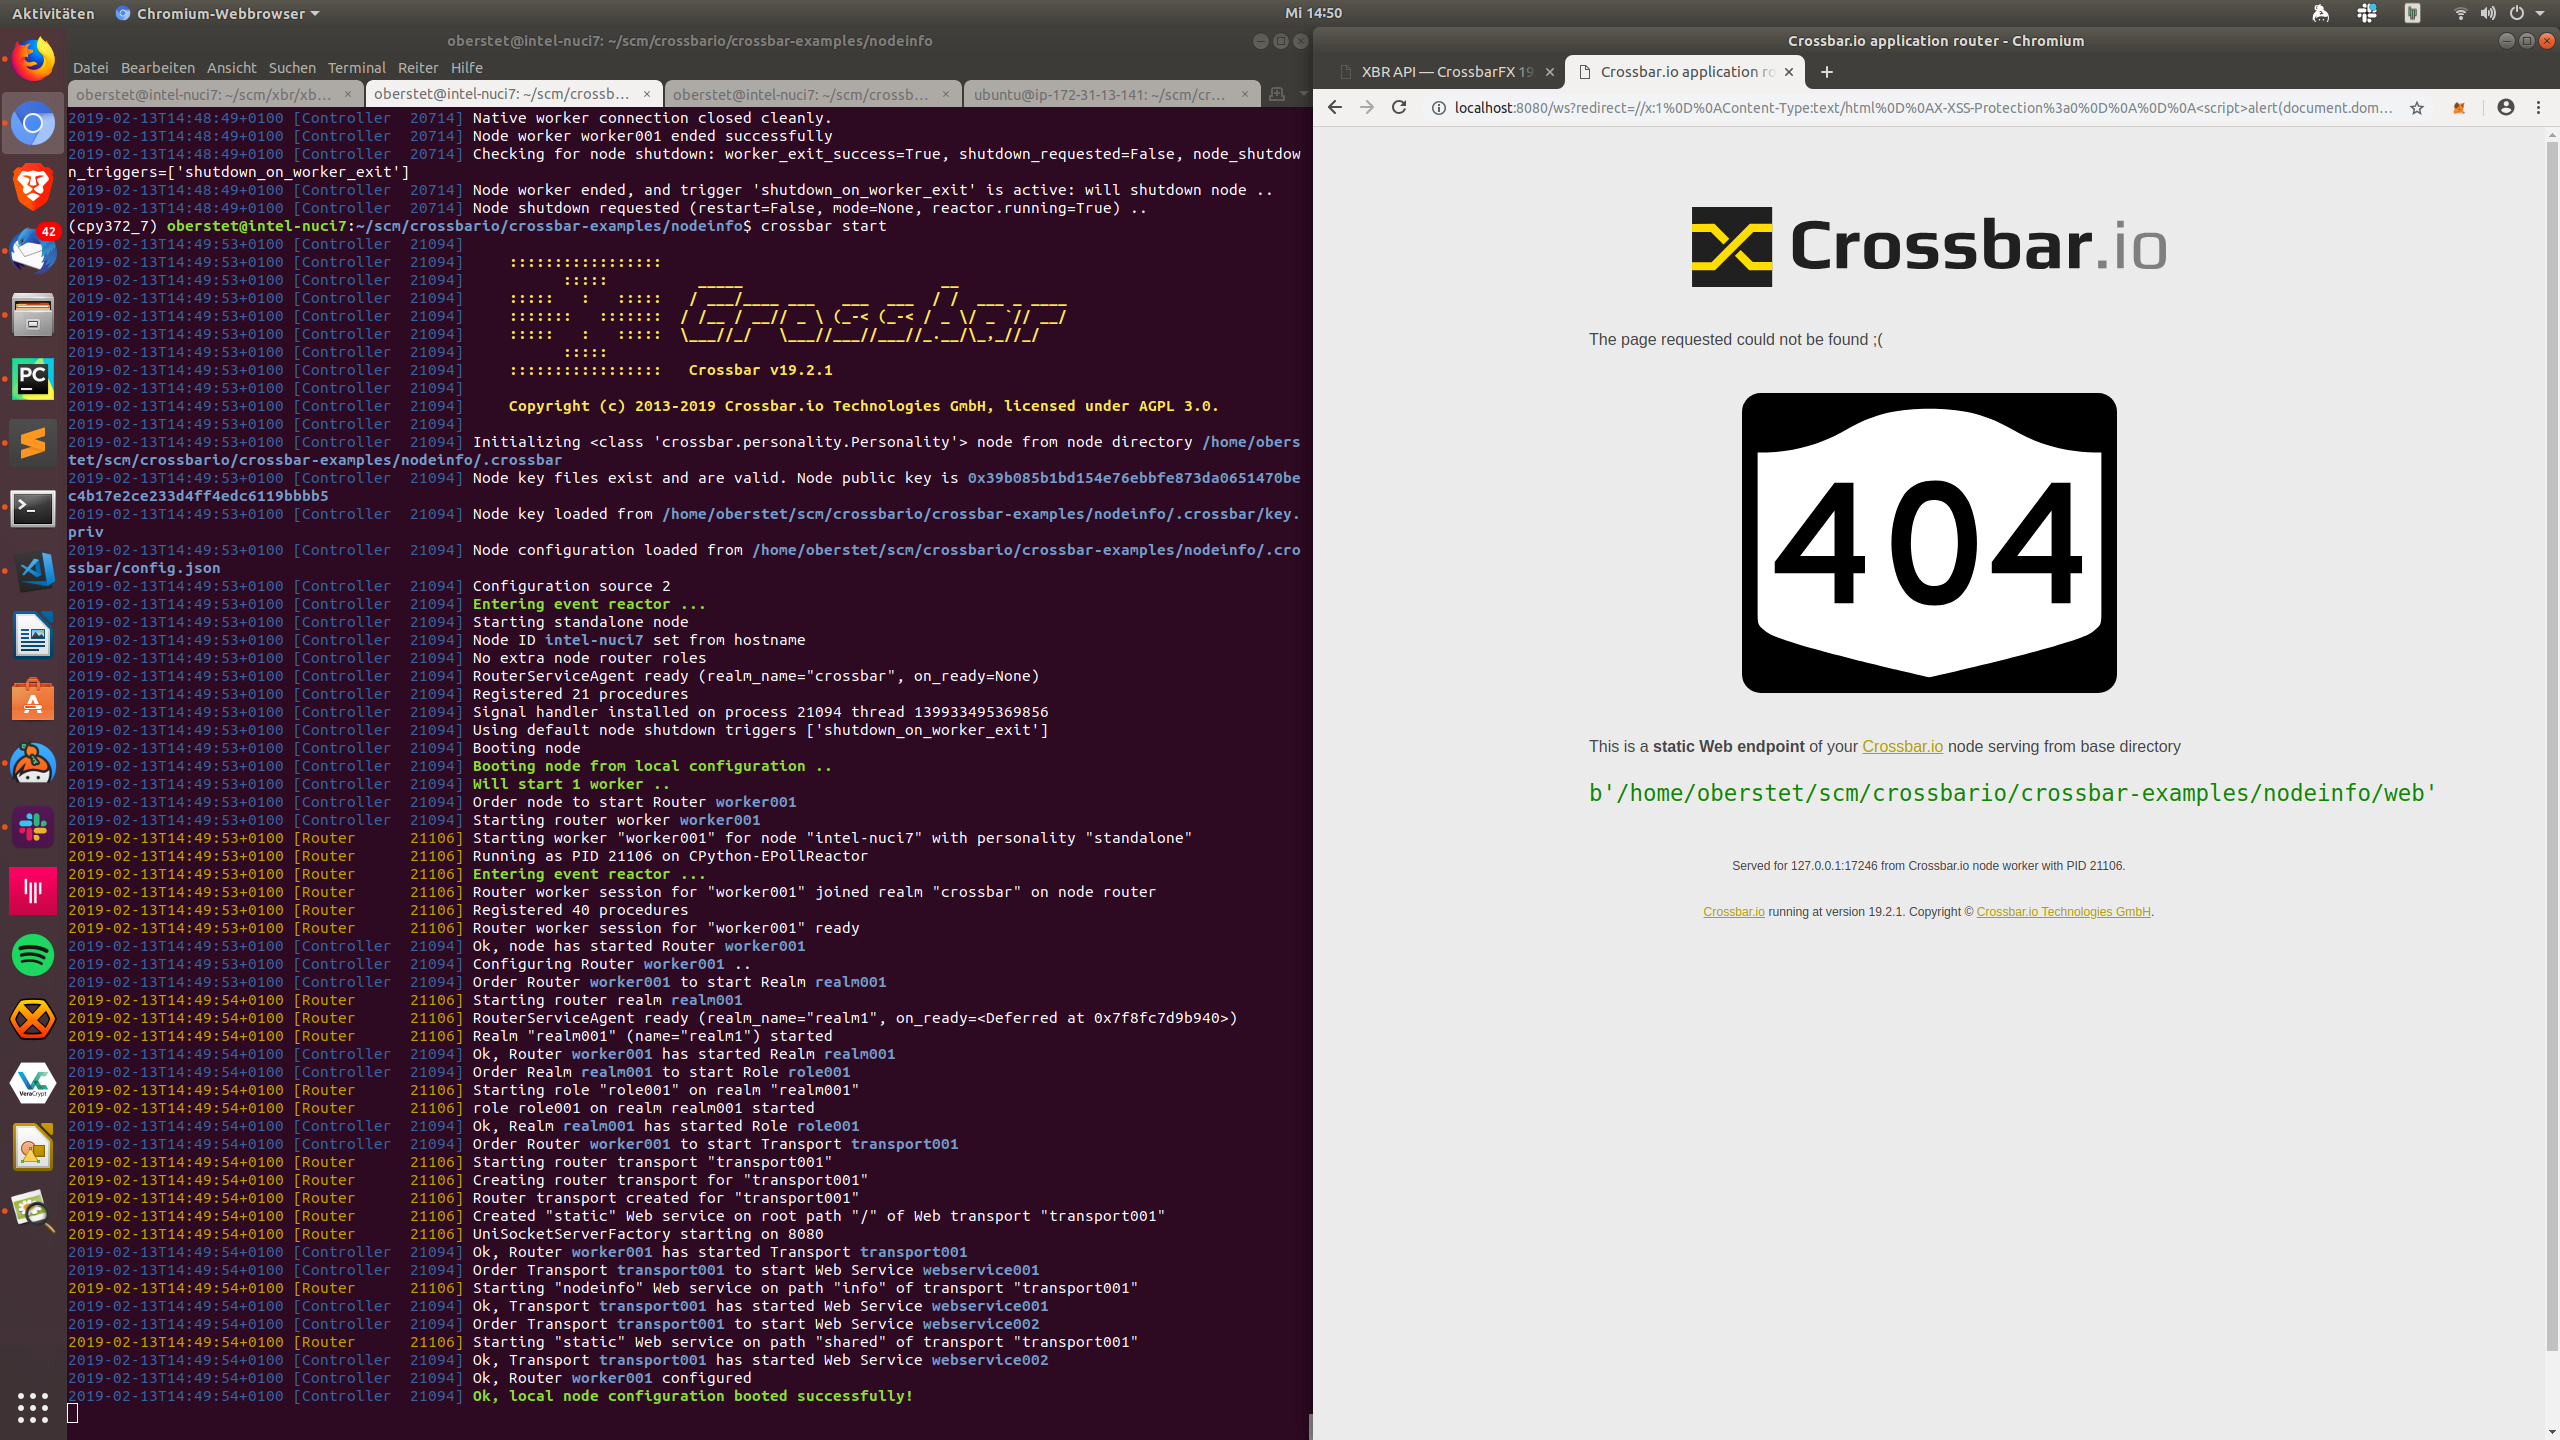 Check our redirecting web resource endpoints for XSS · Issue